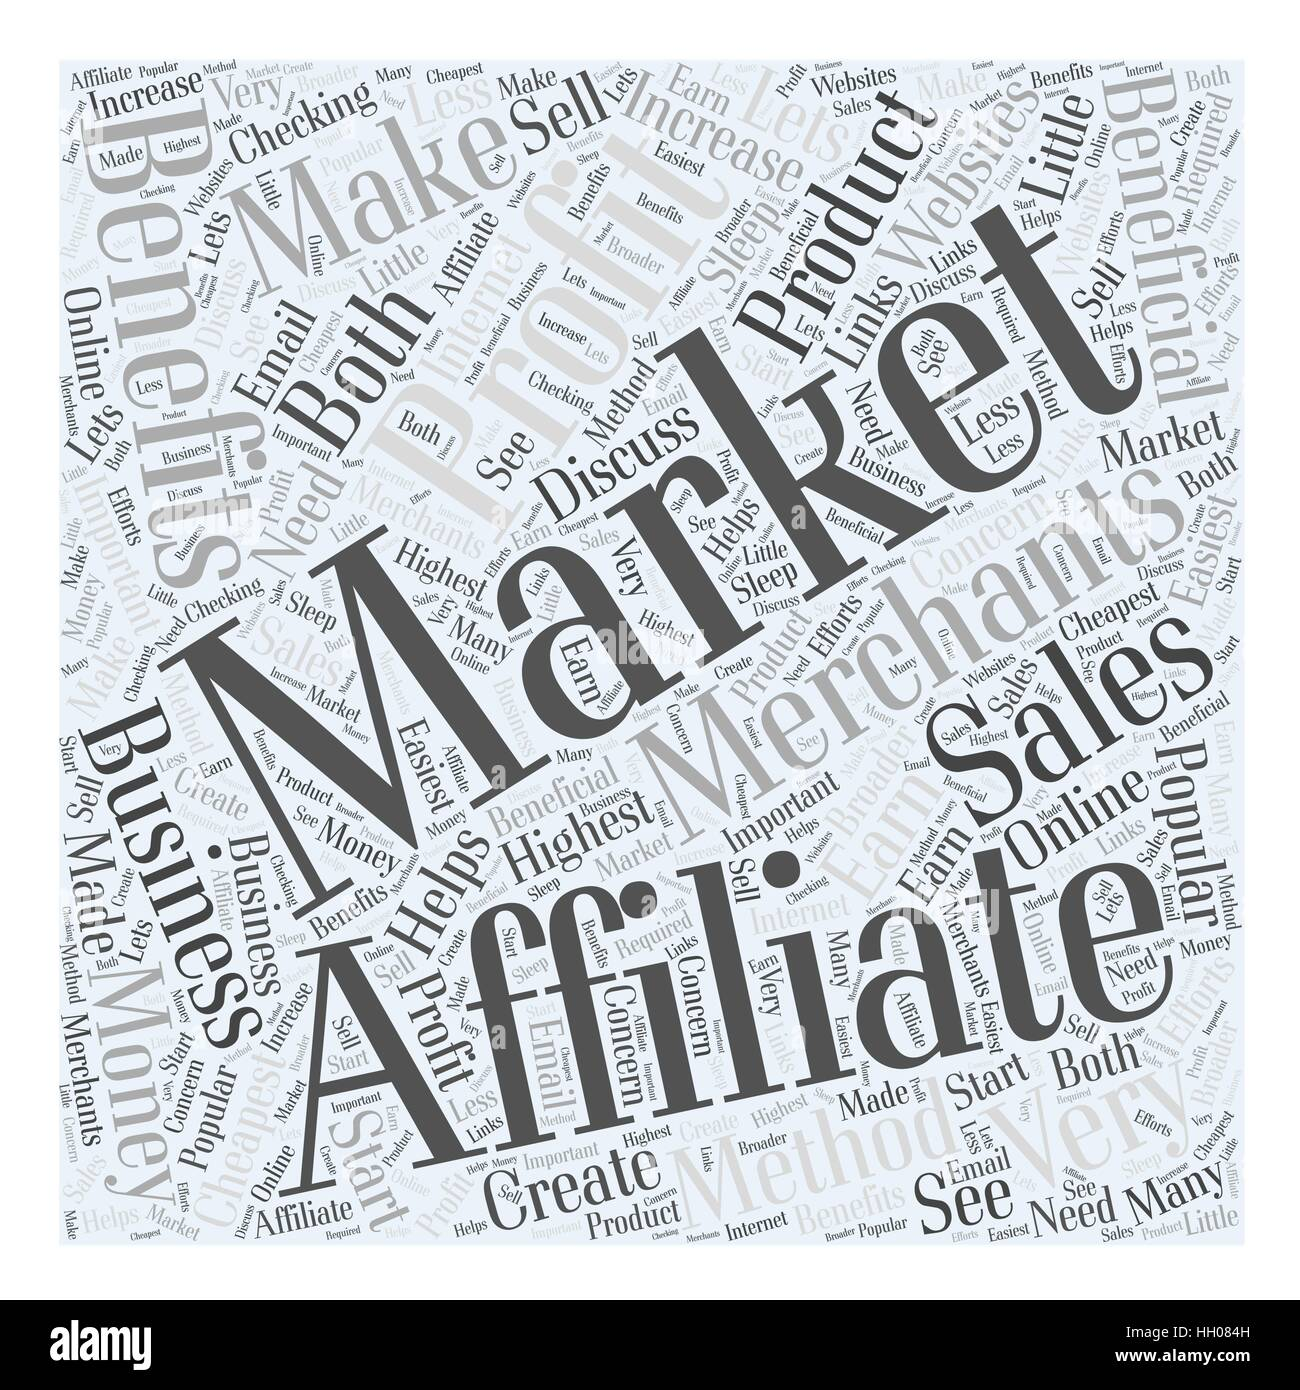 Benefits of Affiliate Marketing Word Cloud Concept - Stock Vector